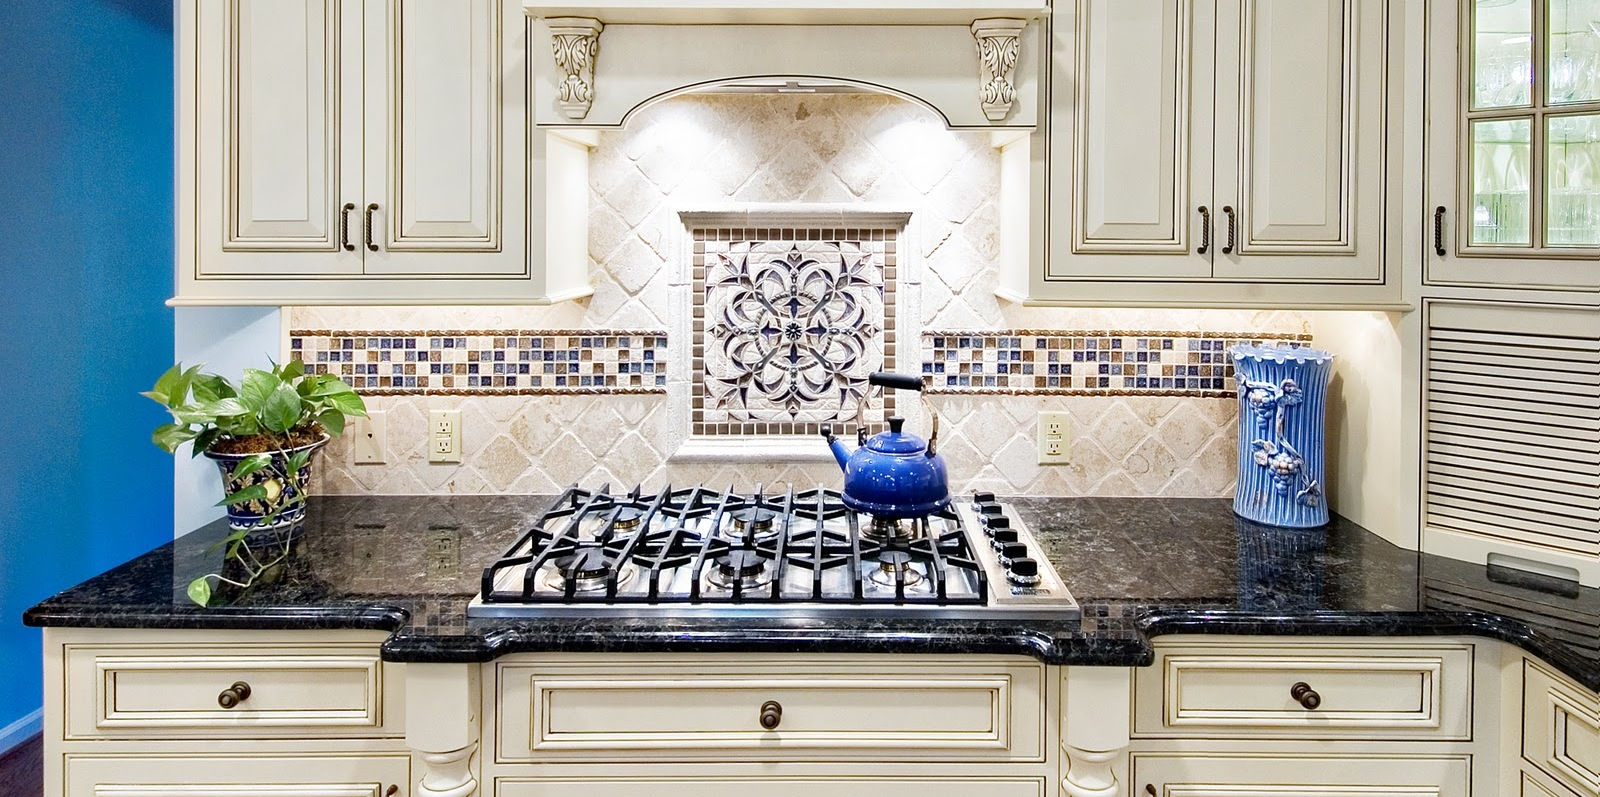 countertopdesigns countertops kitchen Sacramento Kitchen Countertops Sacramento Granite Countertops Countertopdesigns net